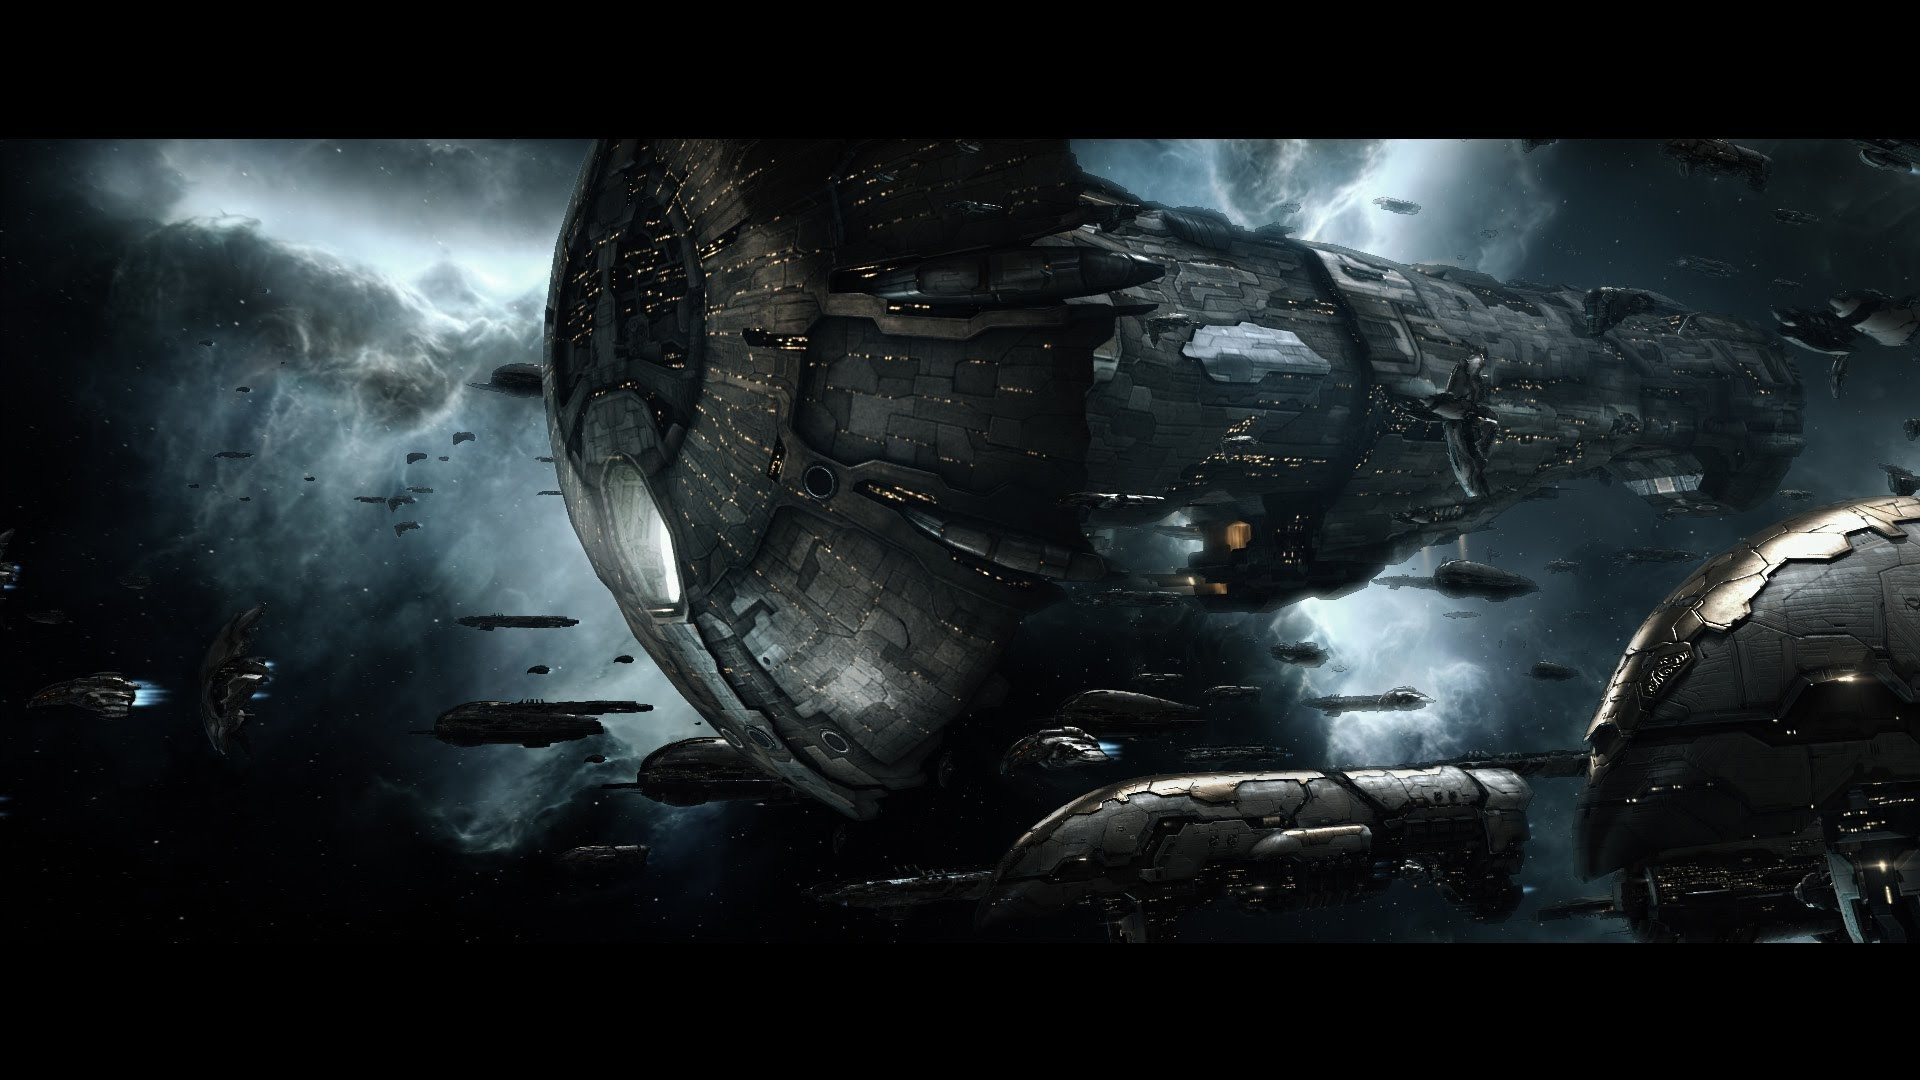 Related Wallpapers from Steam Wallpaper. EVE Online: The Prophecy (Fanfest  2014 Trailer) – Duration: 3 minutes,